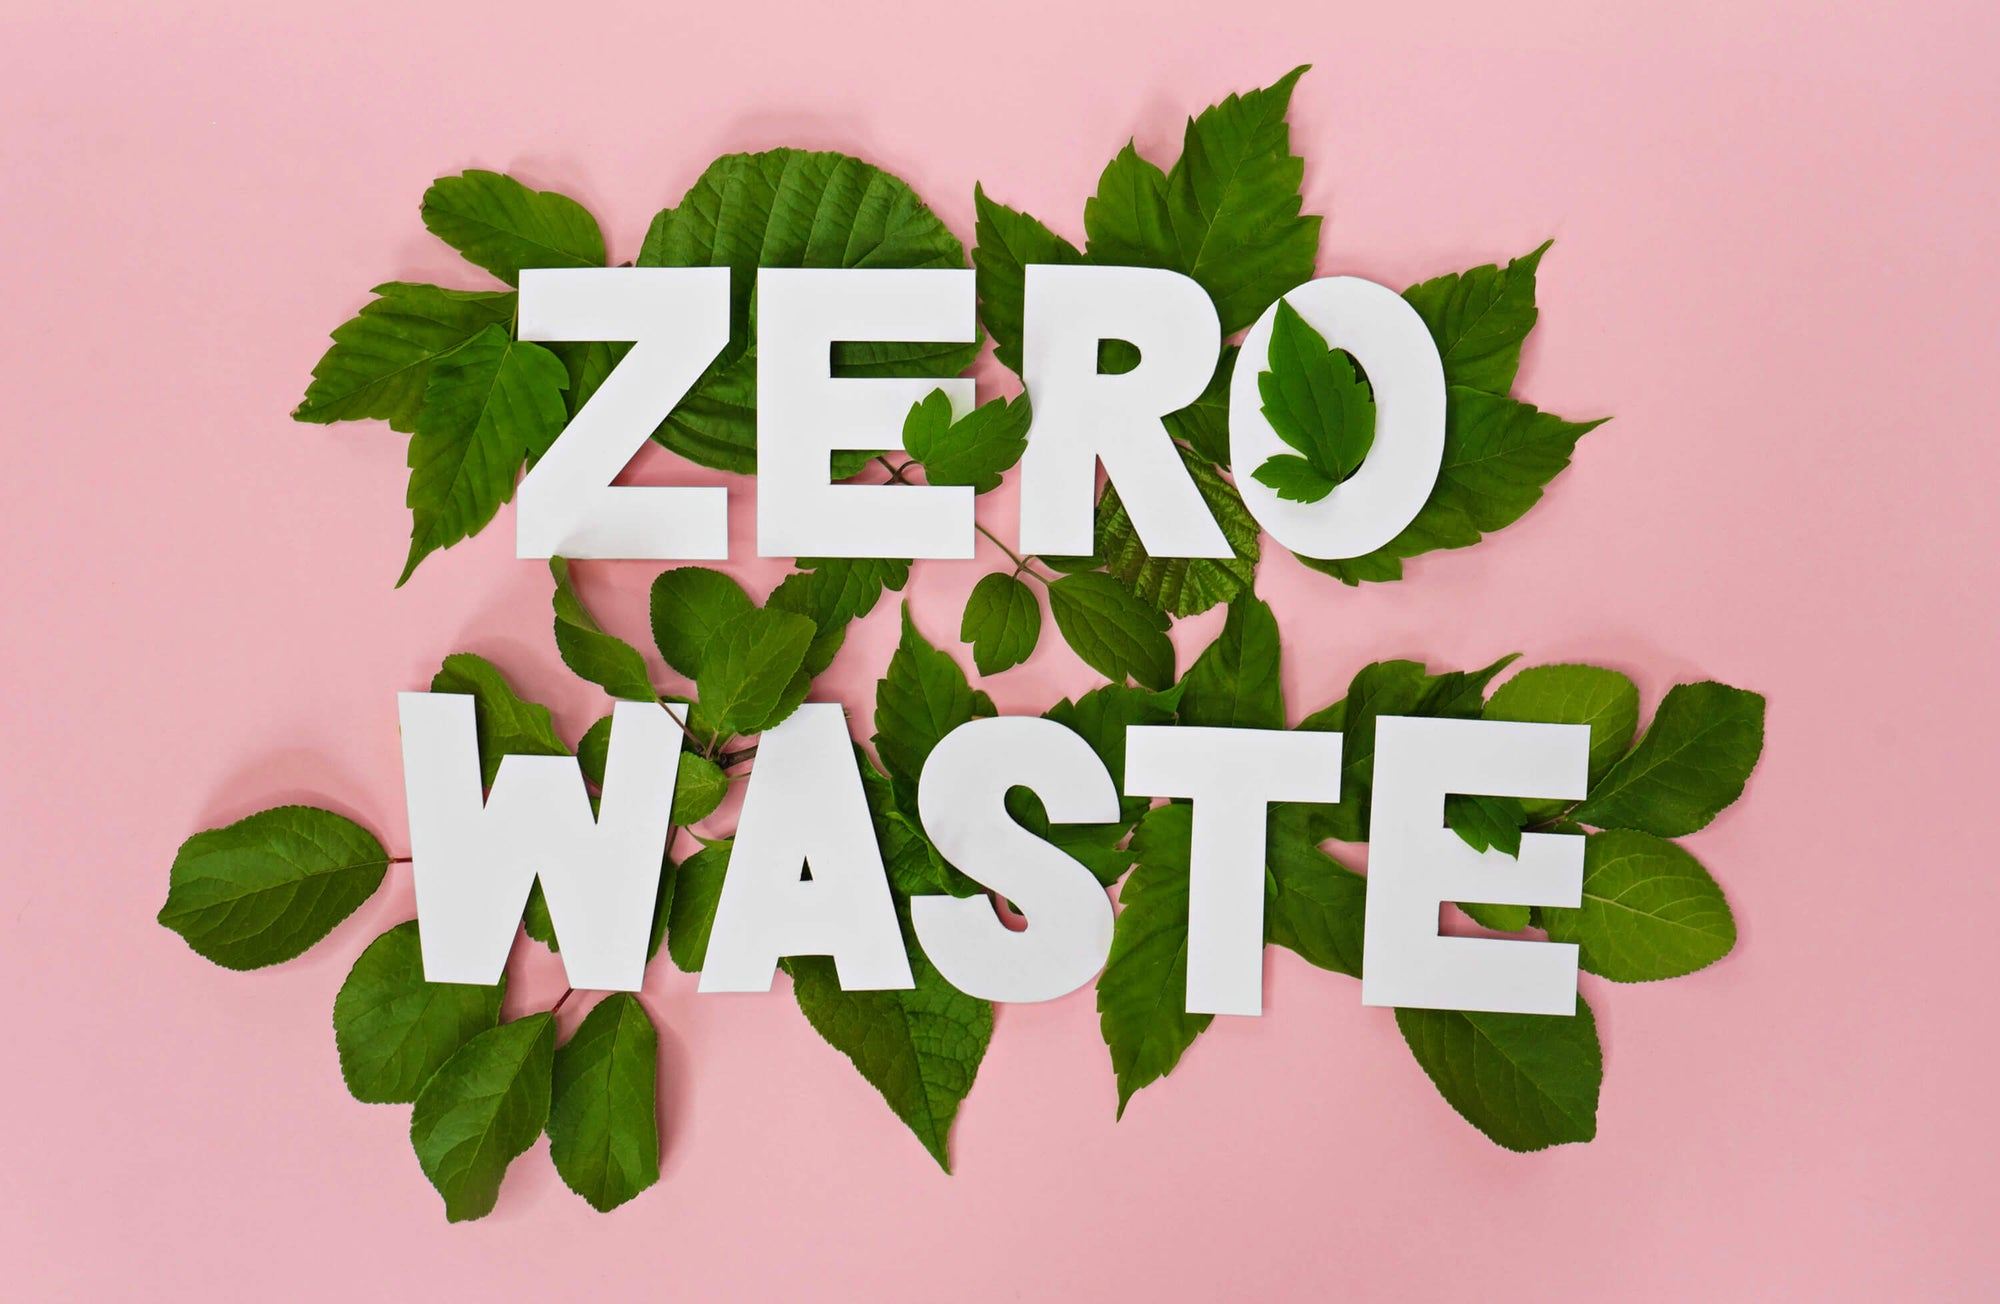 Zero Waste Letters With Green Leaves and Pink Background